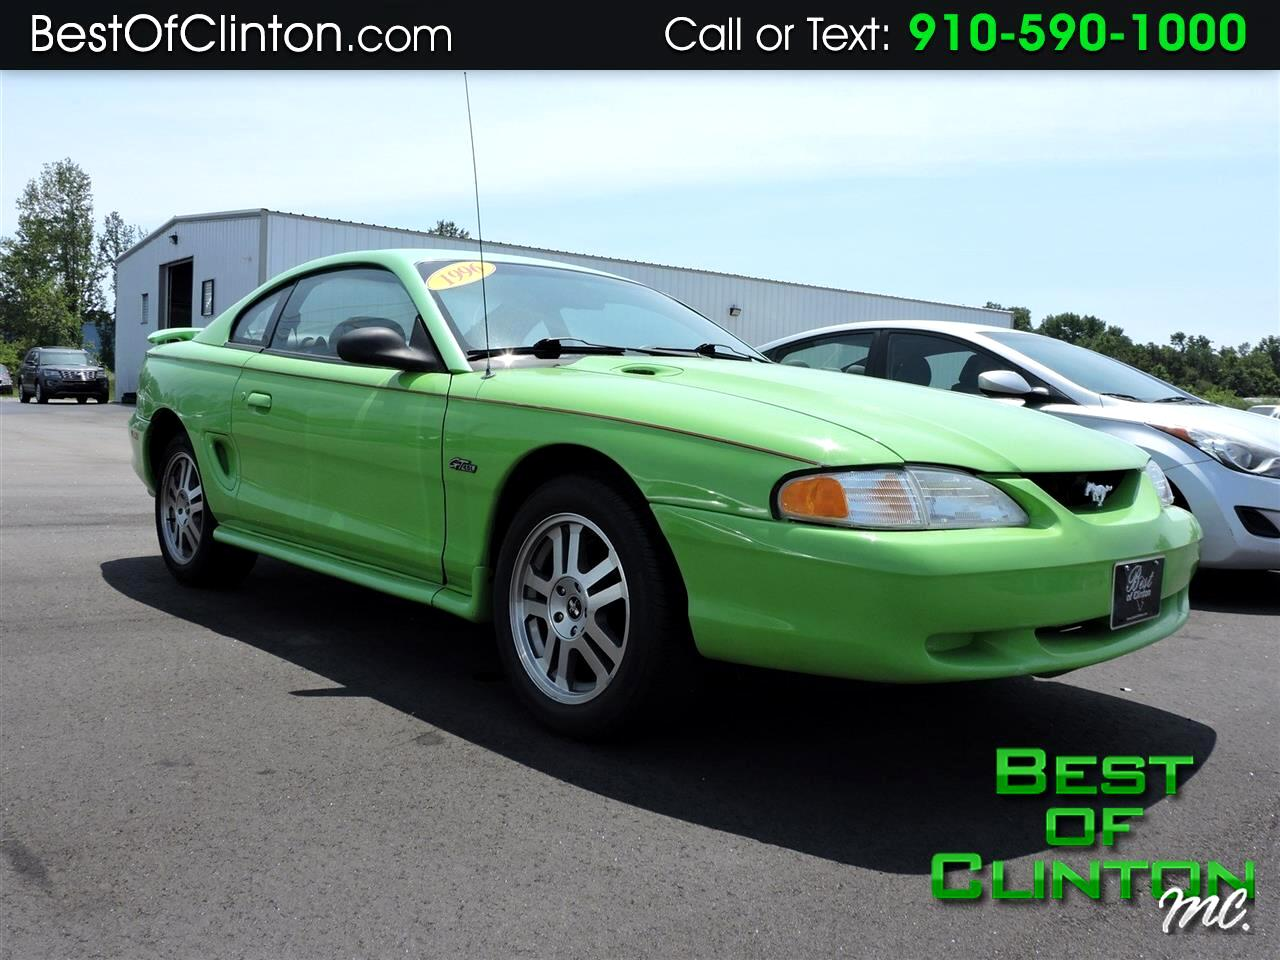 1996 Ford Mustang 2dr Cpe GT